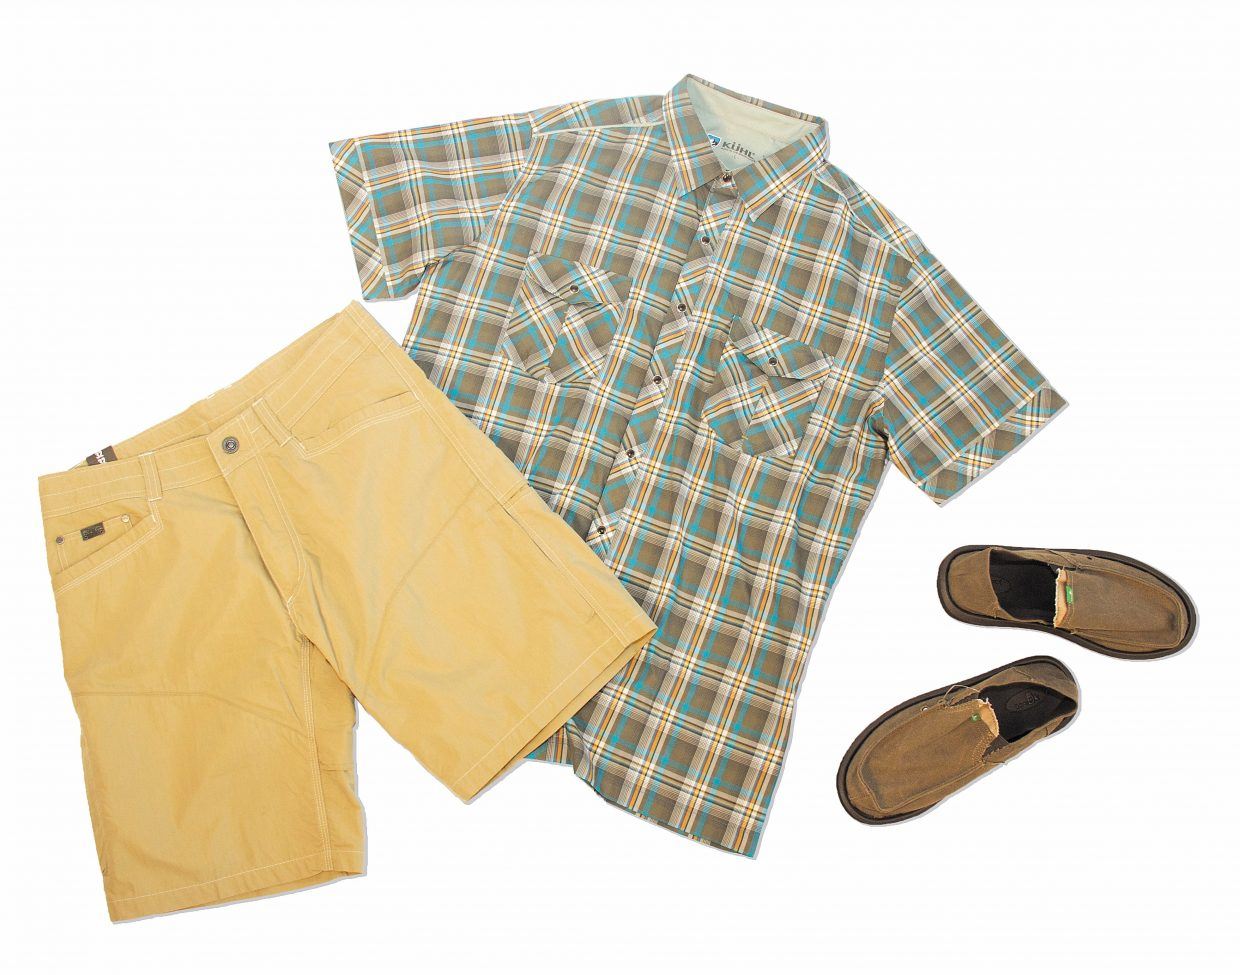 Featured: Kuhl Kontra Air Shorts $70, Kuhl Conquer Shirt $70, Sanuk Pick Pocket Shoes $65